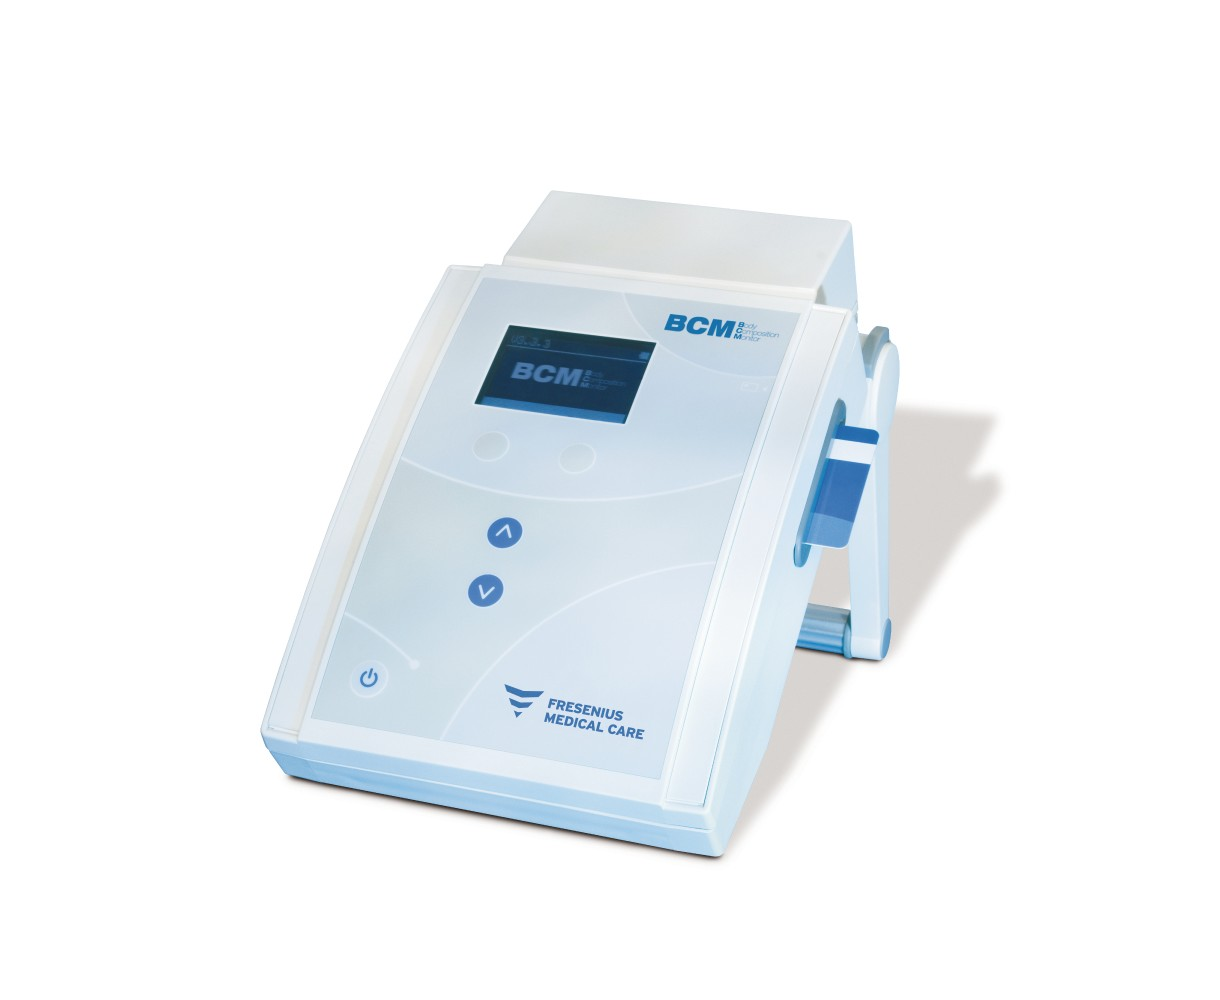 El dispositivo BCM — Body Composition Monitor